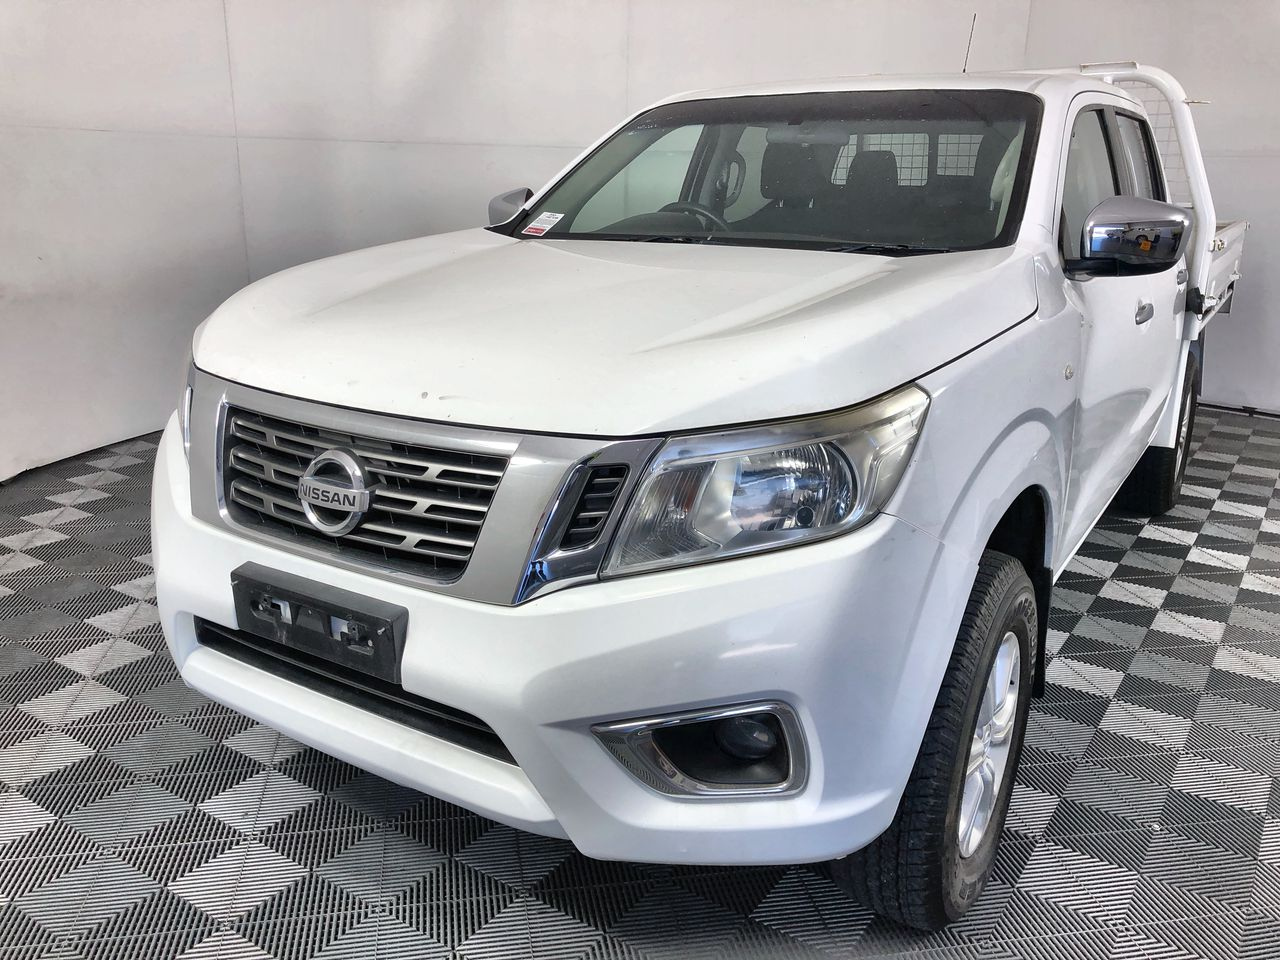 2015 Nissan Navara NP300 4x4 71,038km's Auto